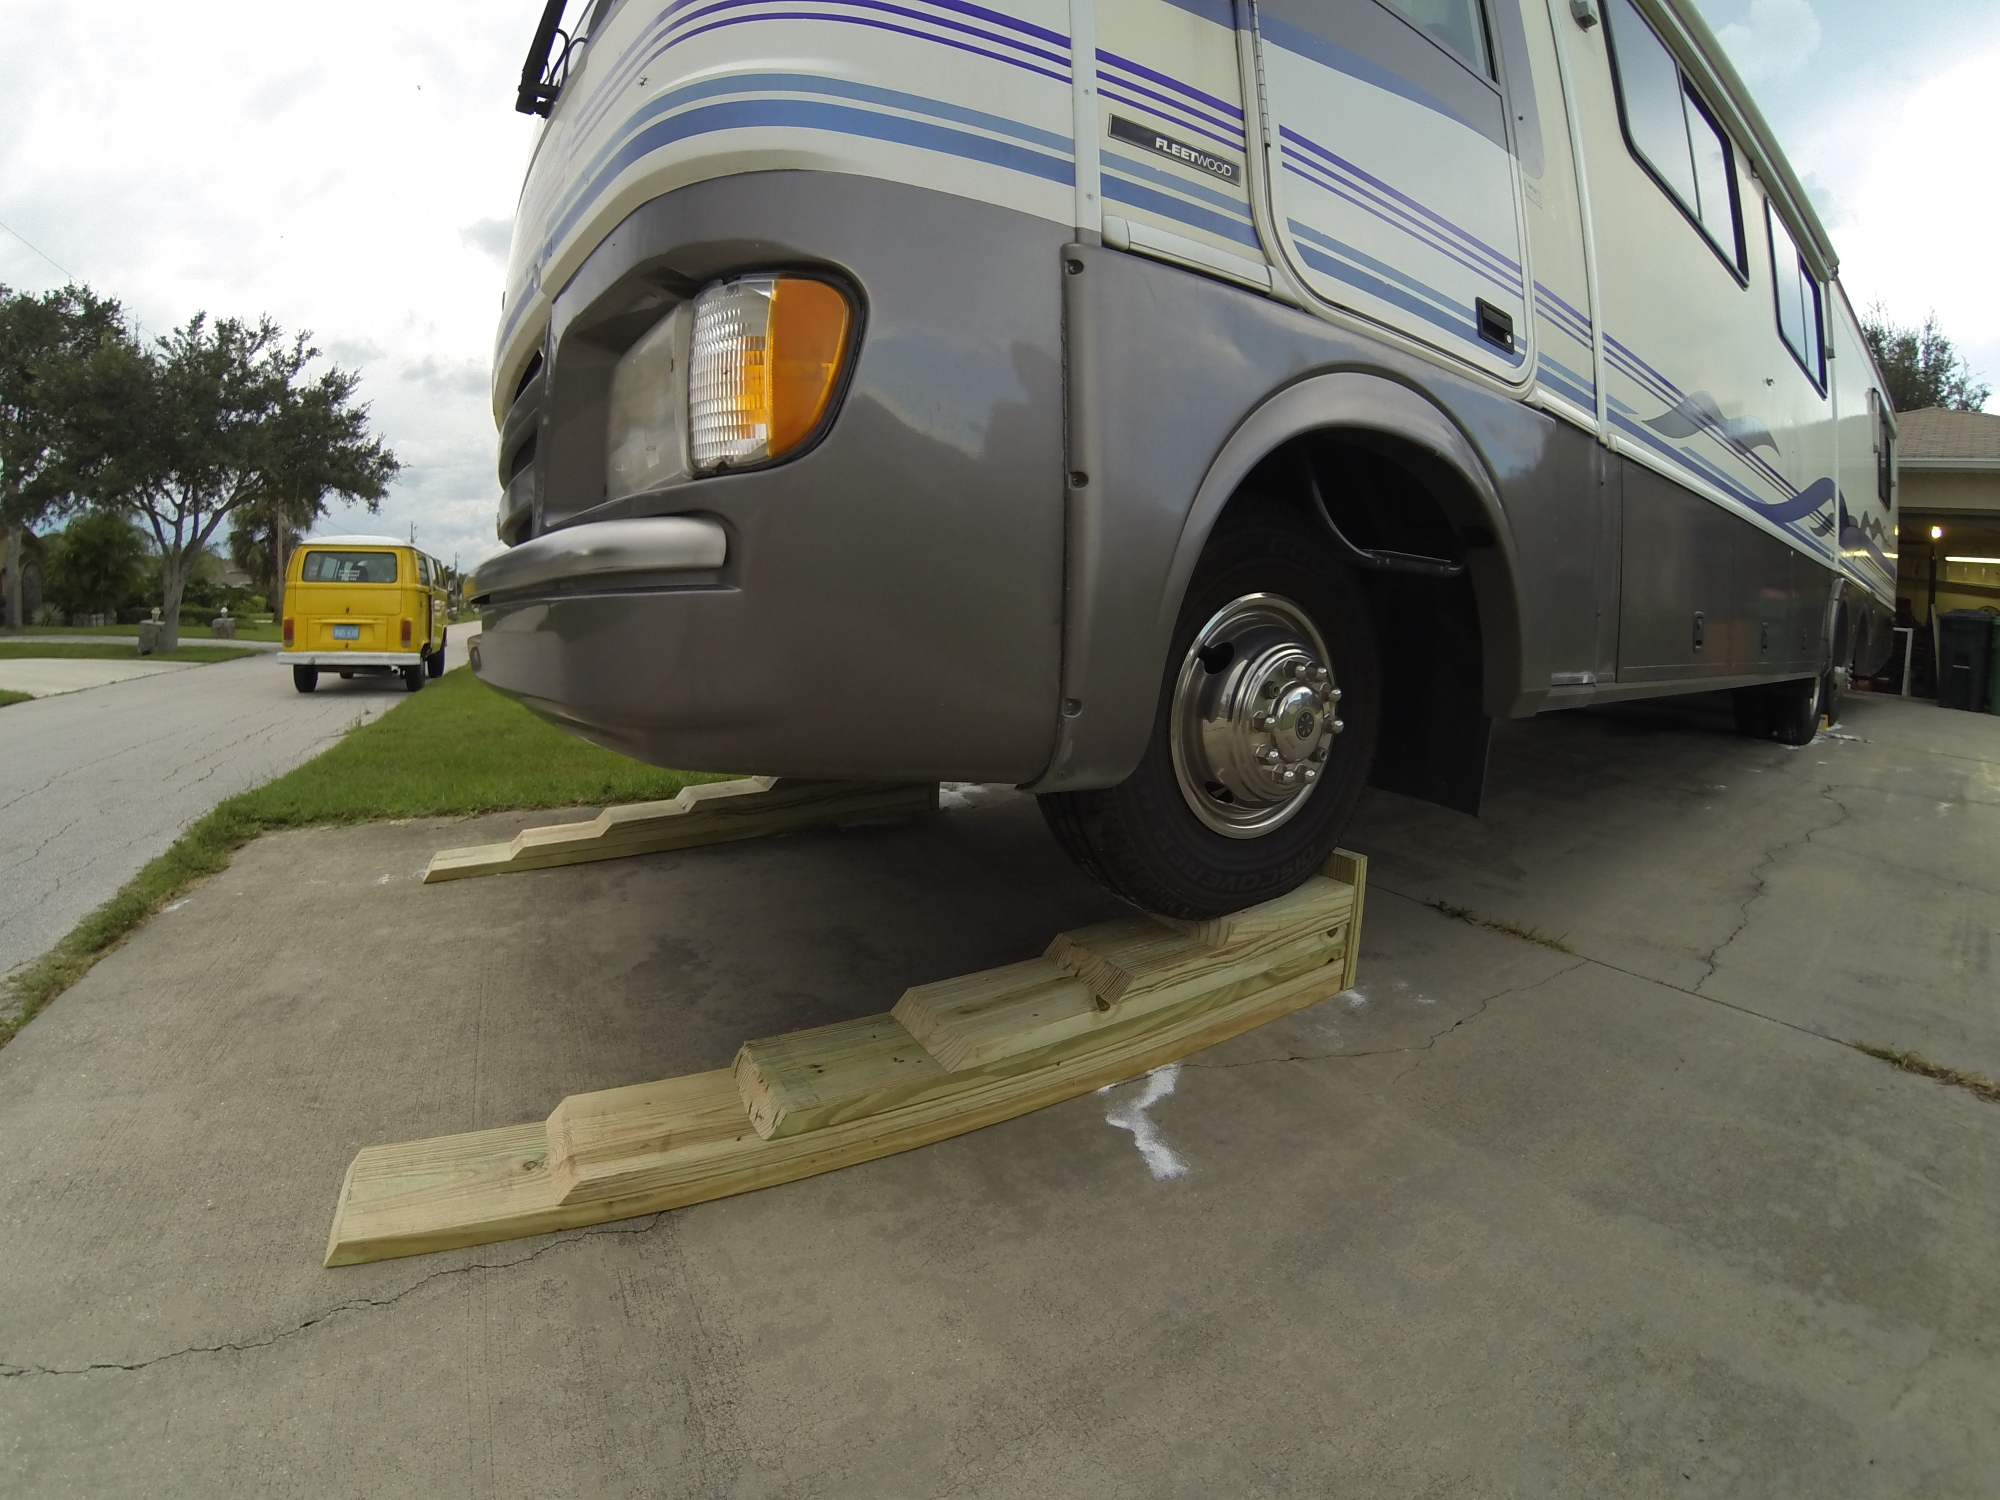 How to build RV leveling ramps – The Adventures of Pookie ...